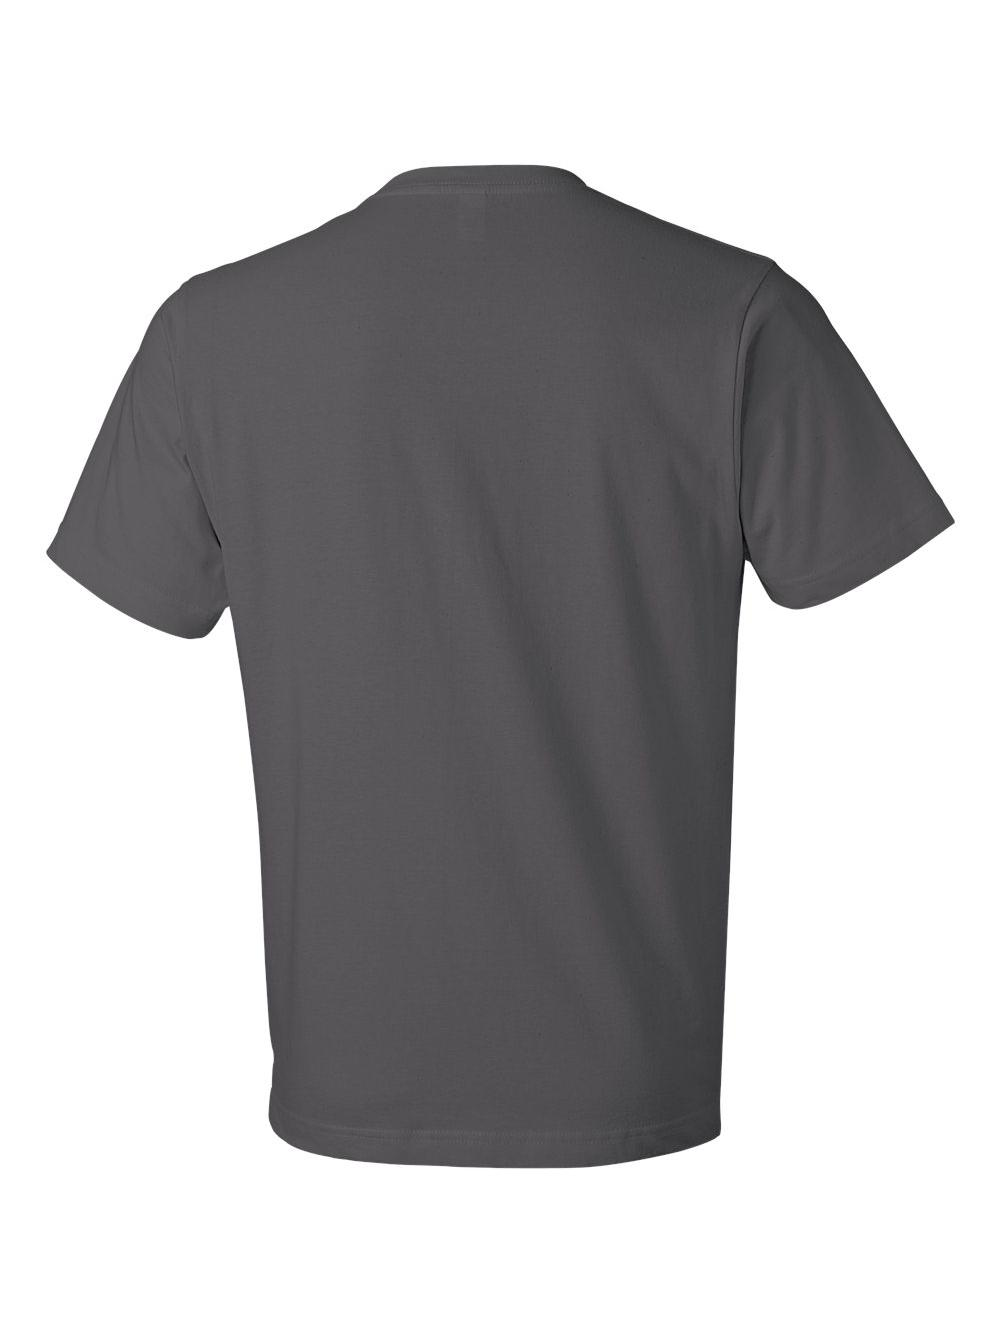 Anvil-Lightweight-Fashion-Short-Sleeve-T-Shirt-980 thumbnail 10